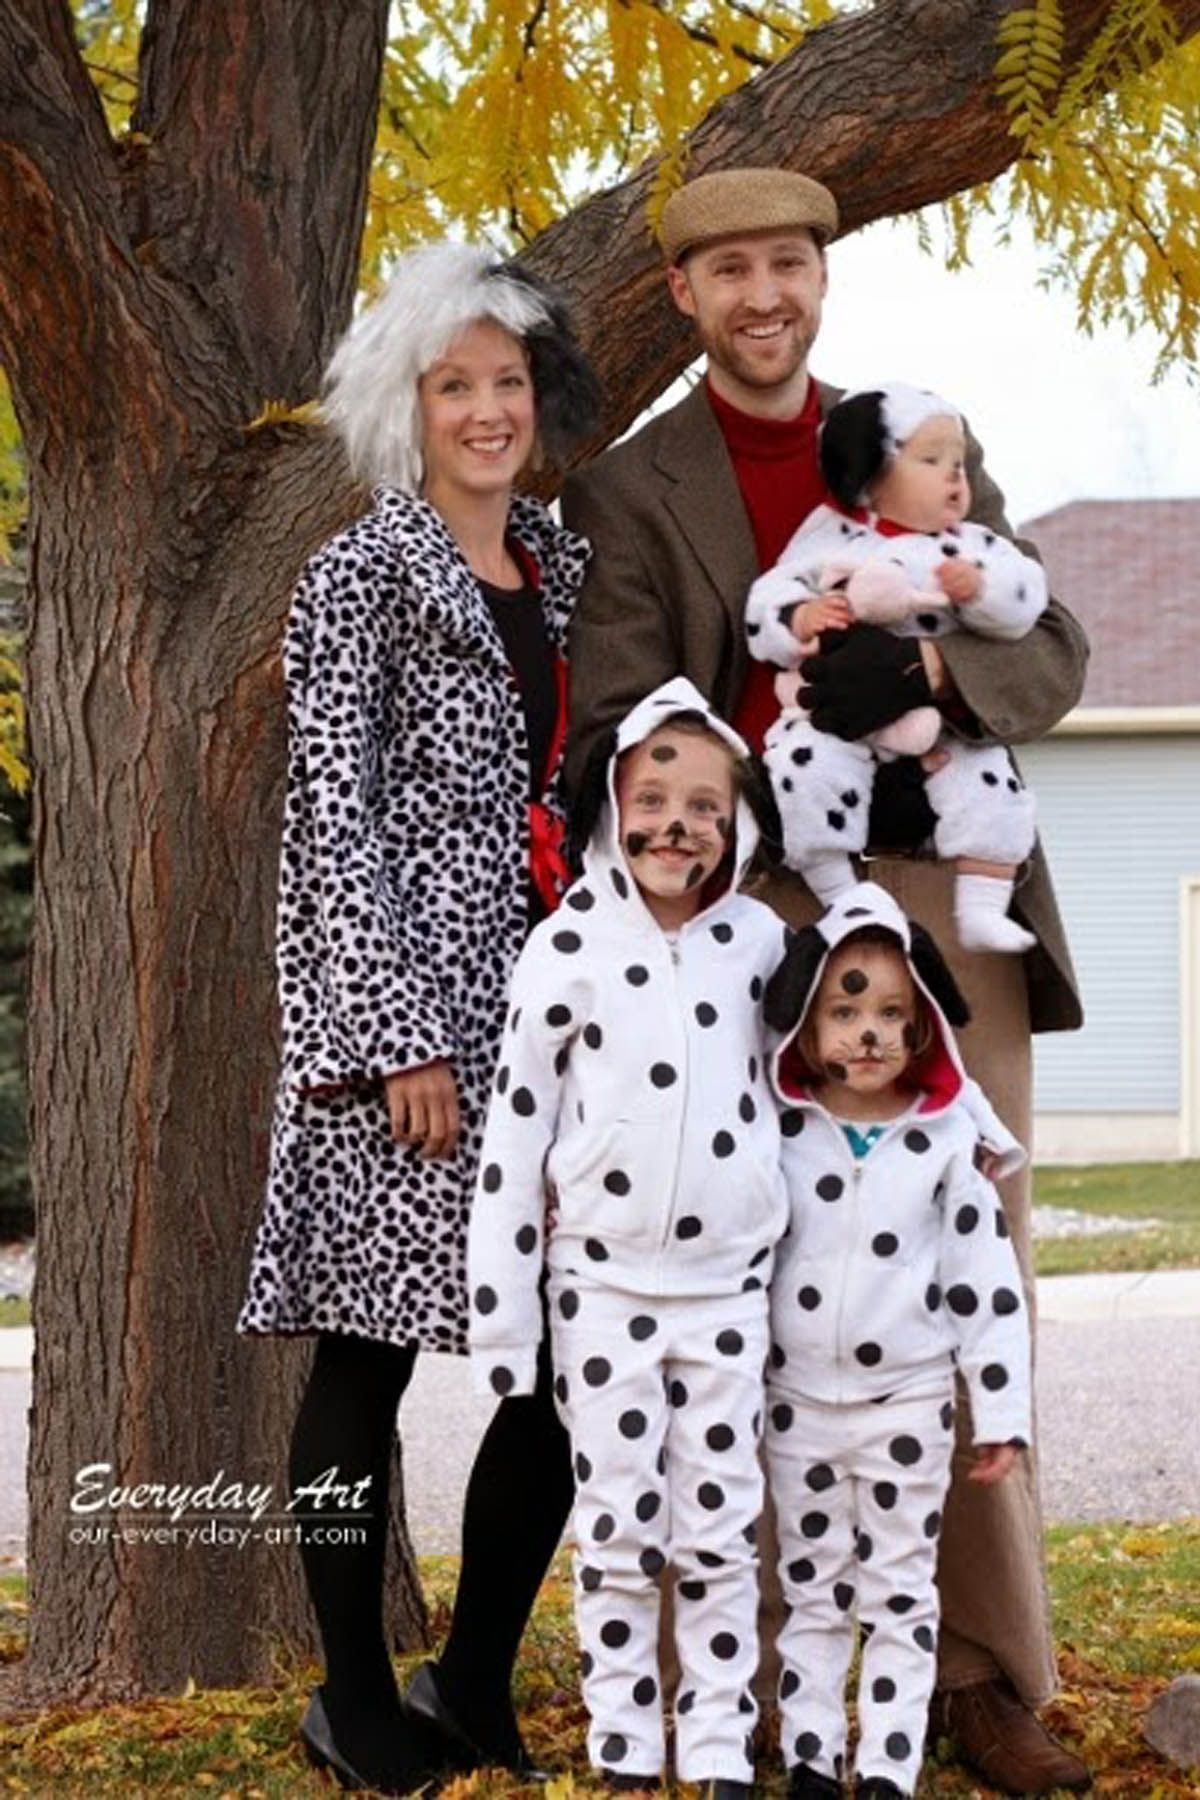 Fesselnd 101 Dalmatians Characters Family Halloween Costumes